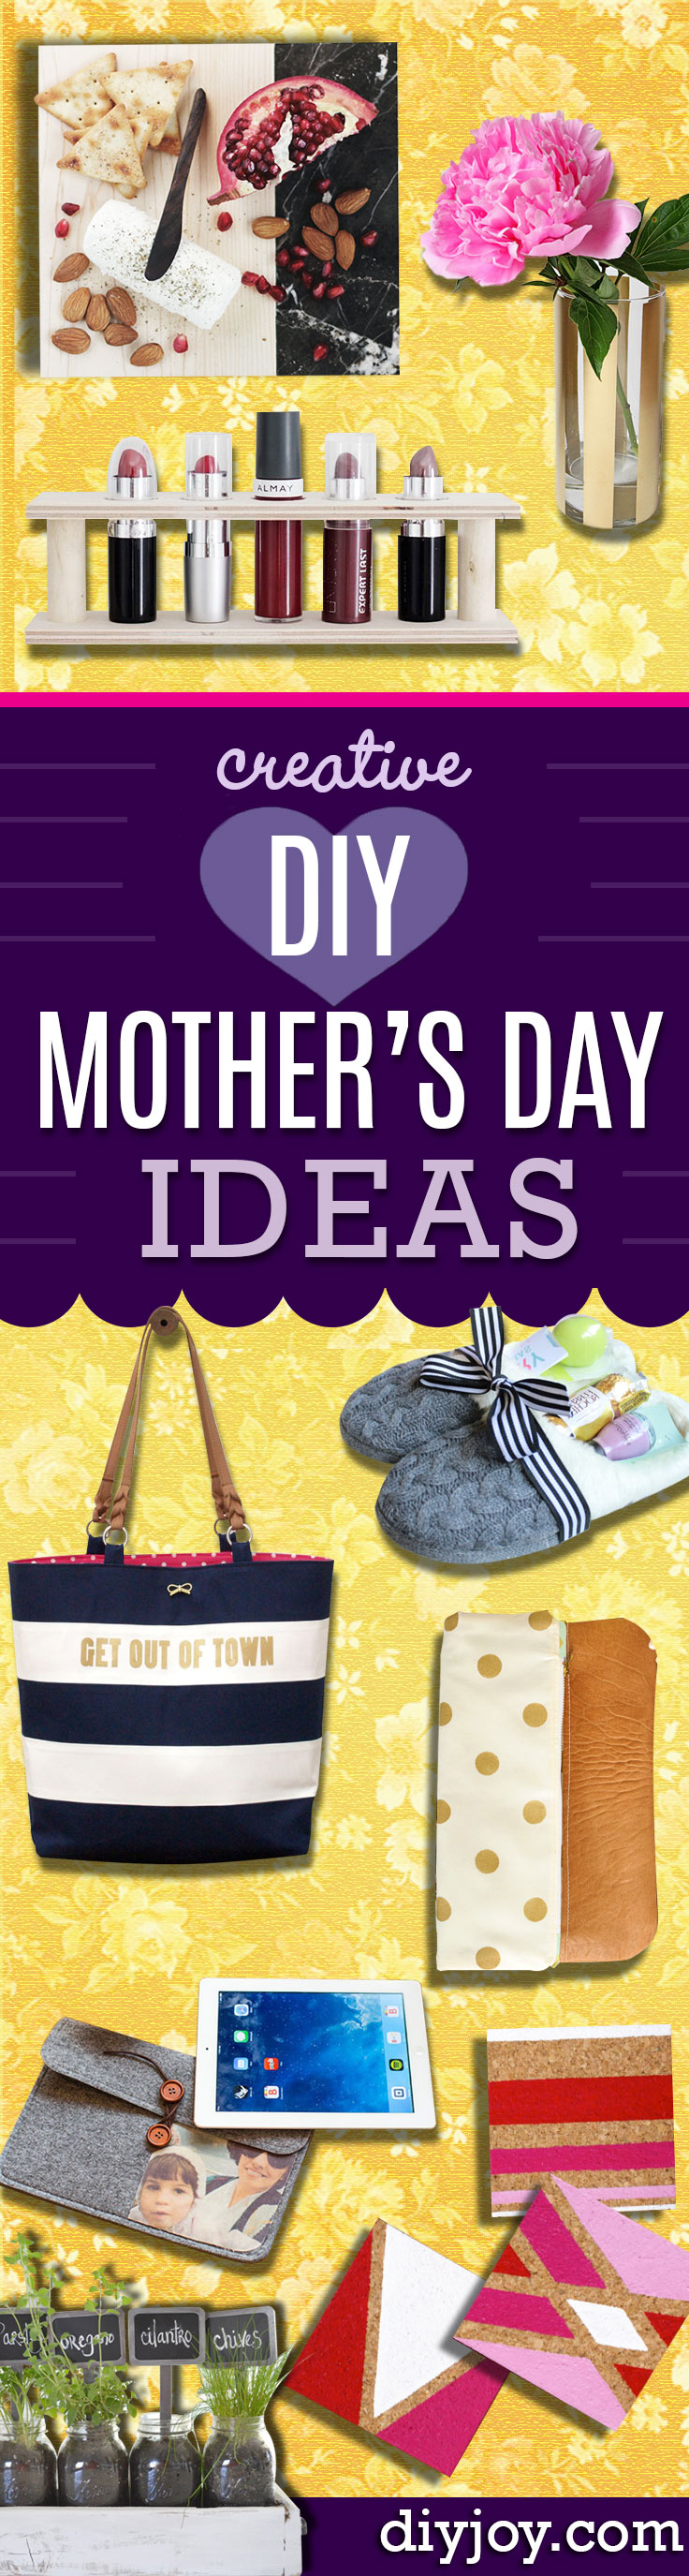 Diy Mother S Day Gifts From Baby Life Style By